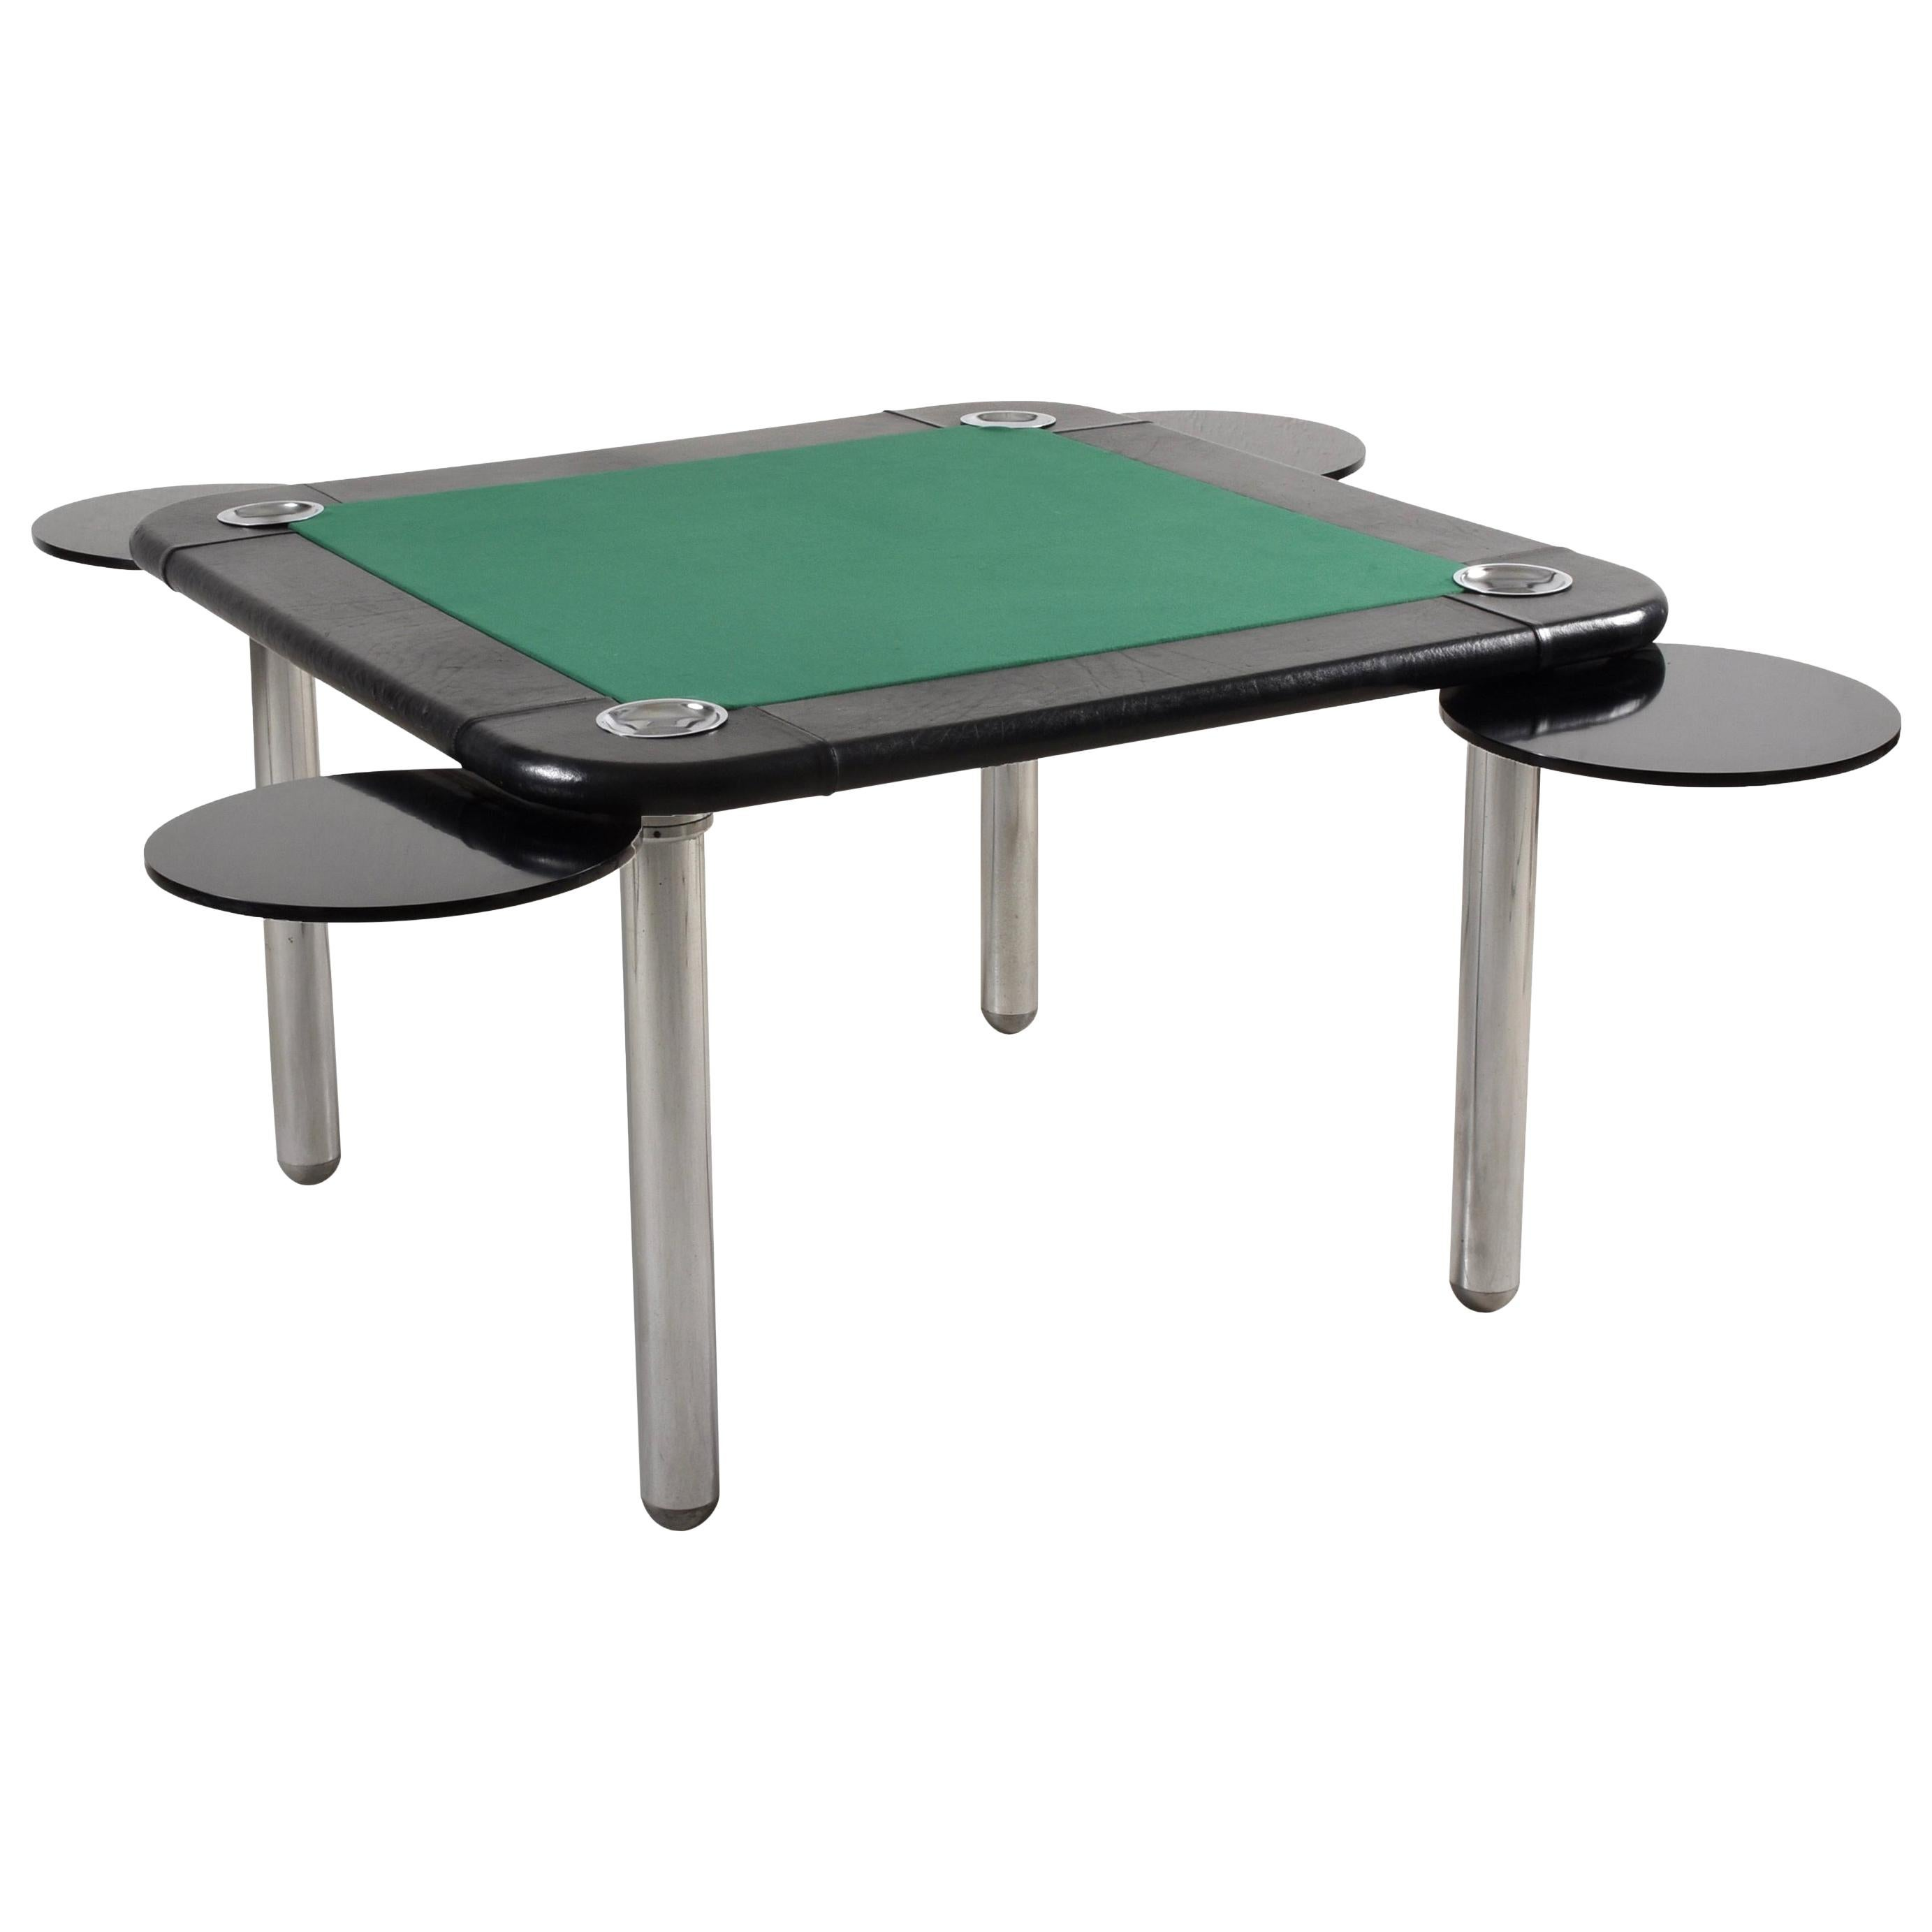 Leather and Chromed Steel Italian Game Table attributed to Zanotta, 1960s